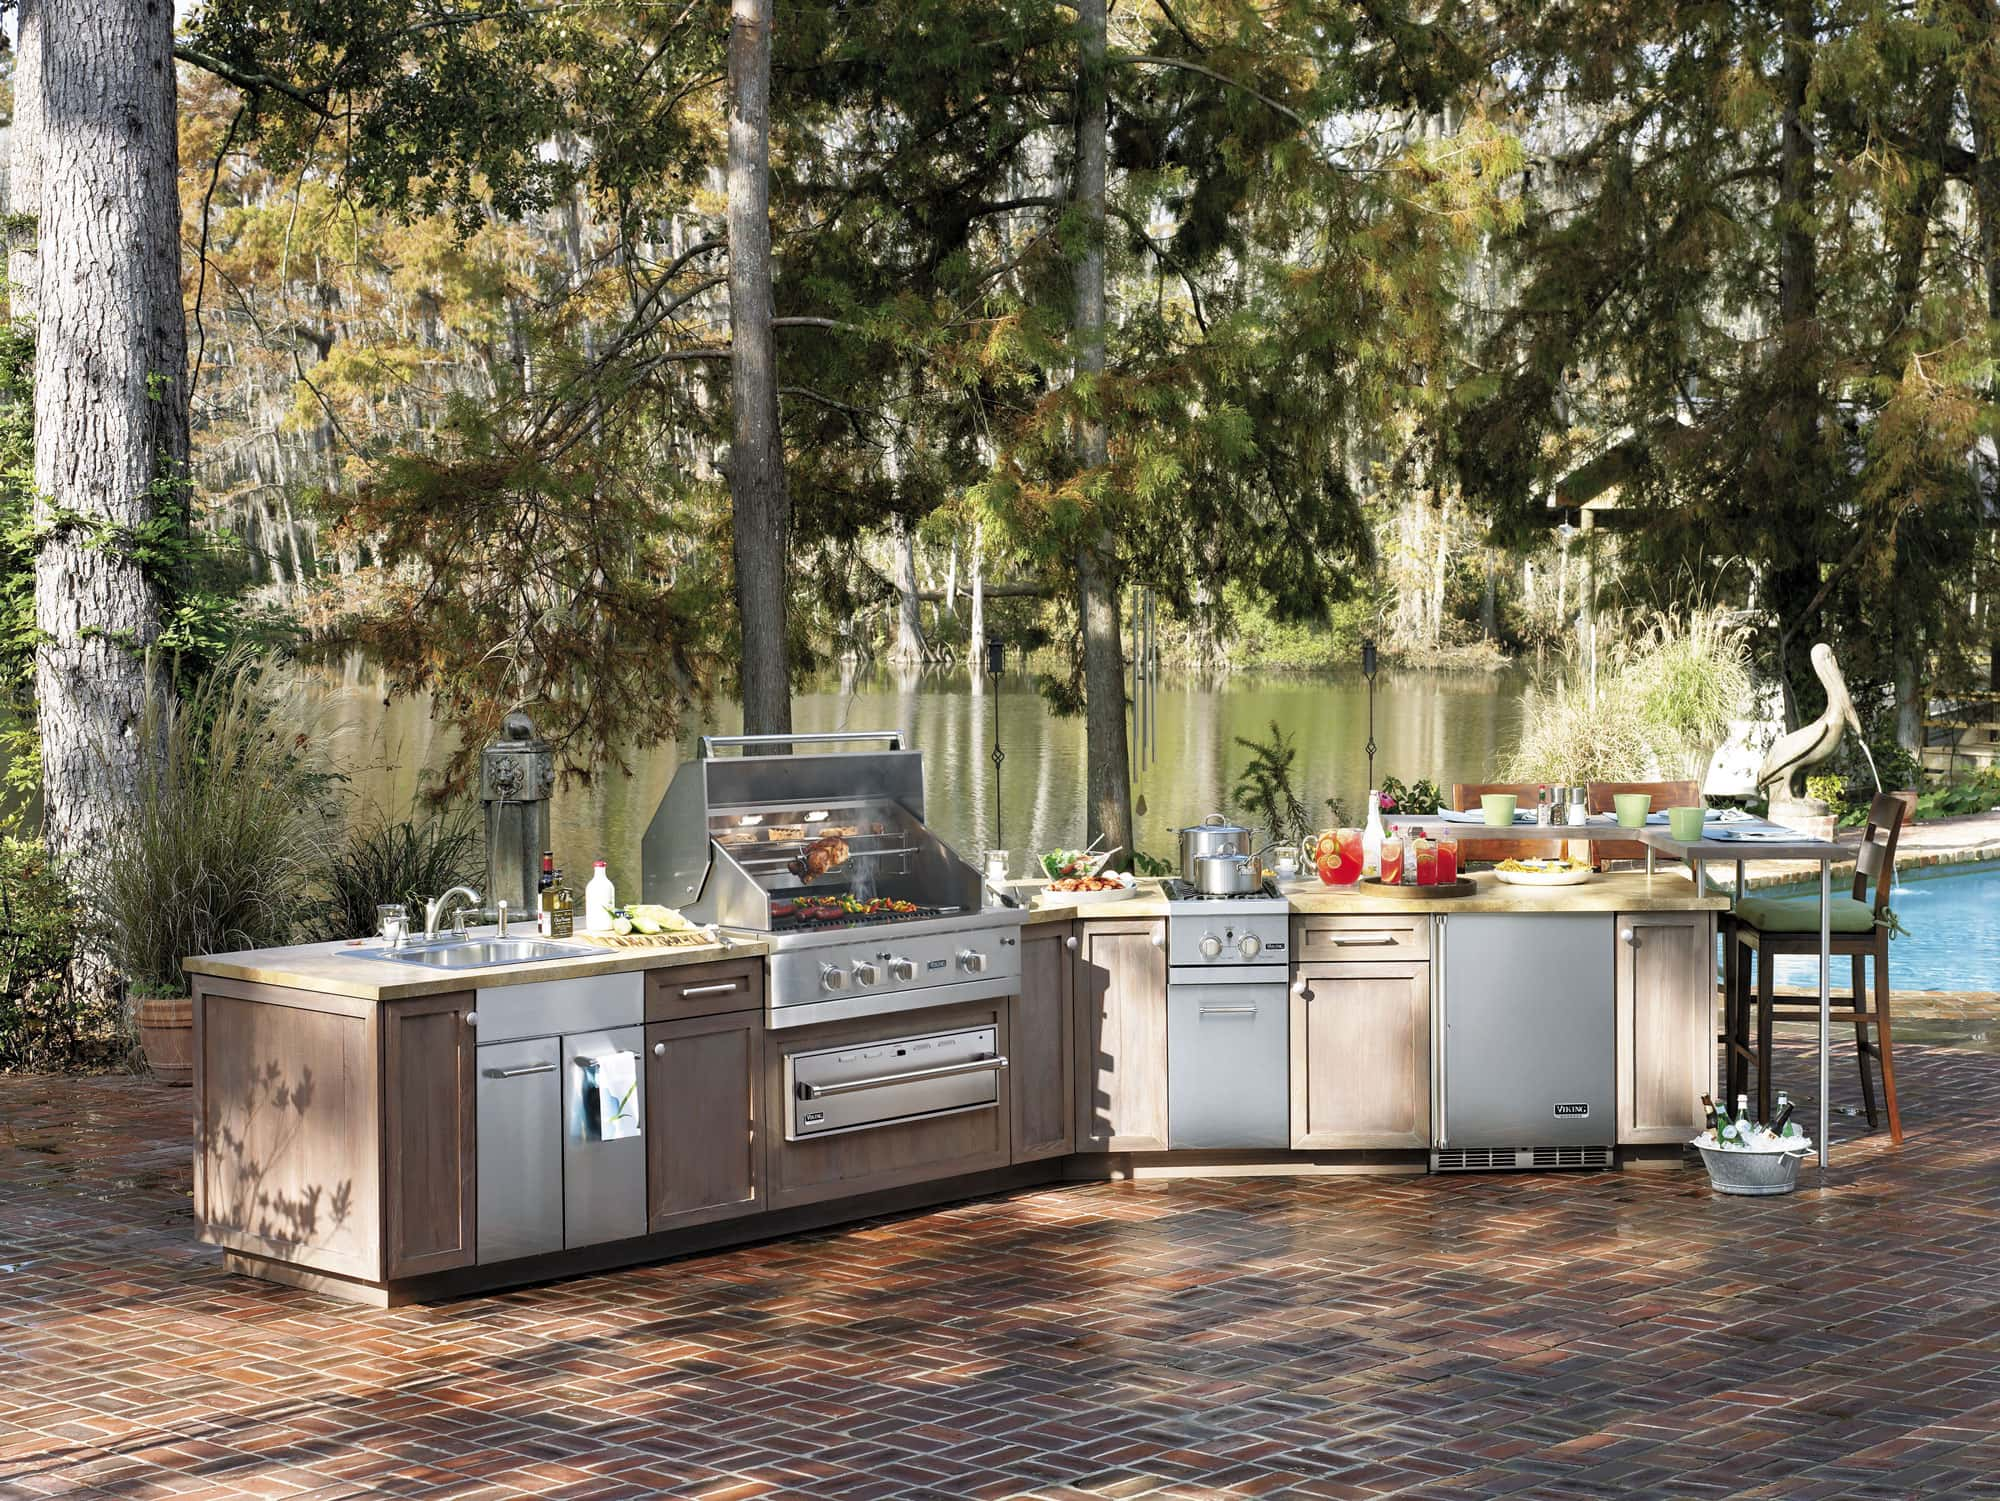 Top outdoor kitchens for every budget for Viking outdoor cabinets